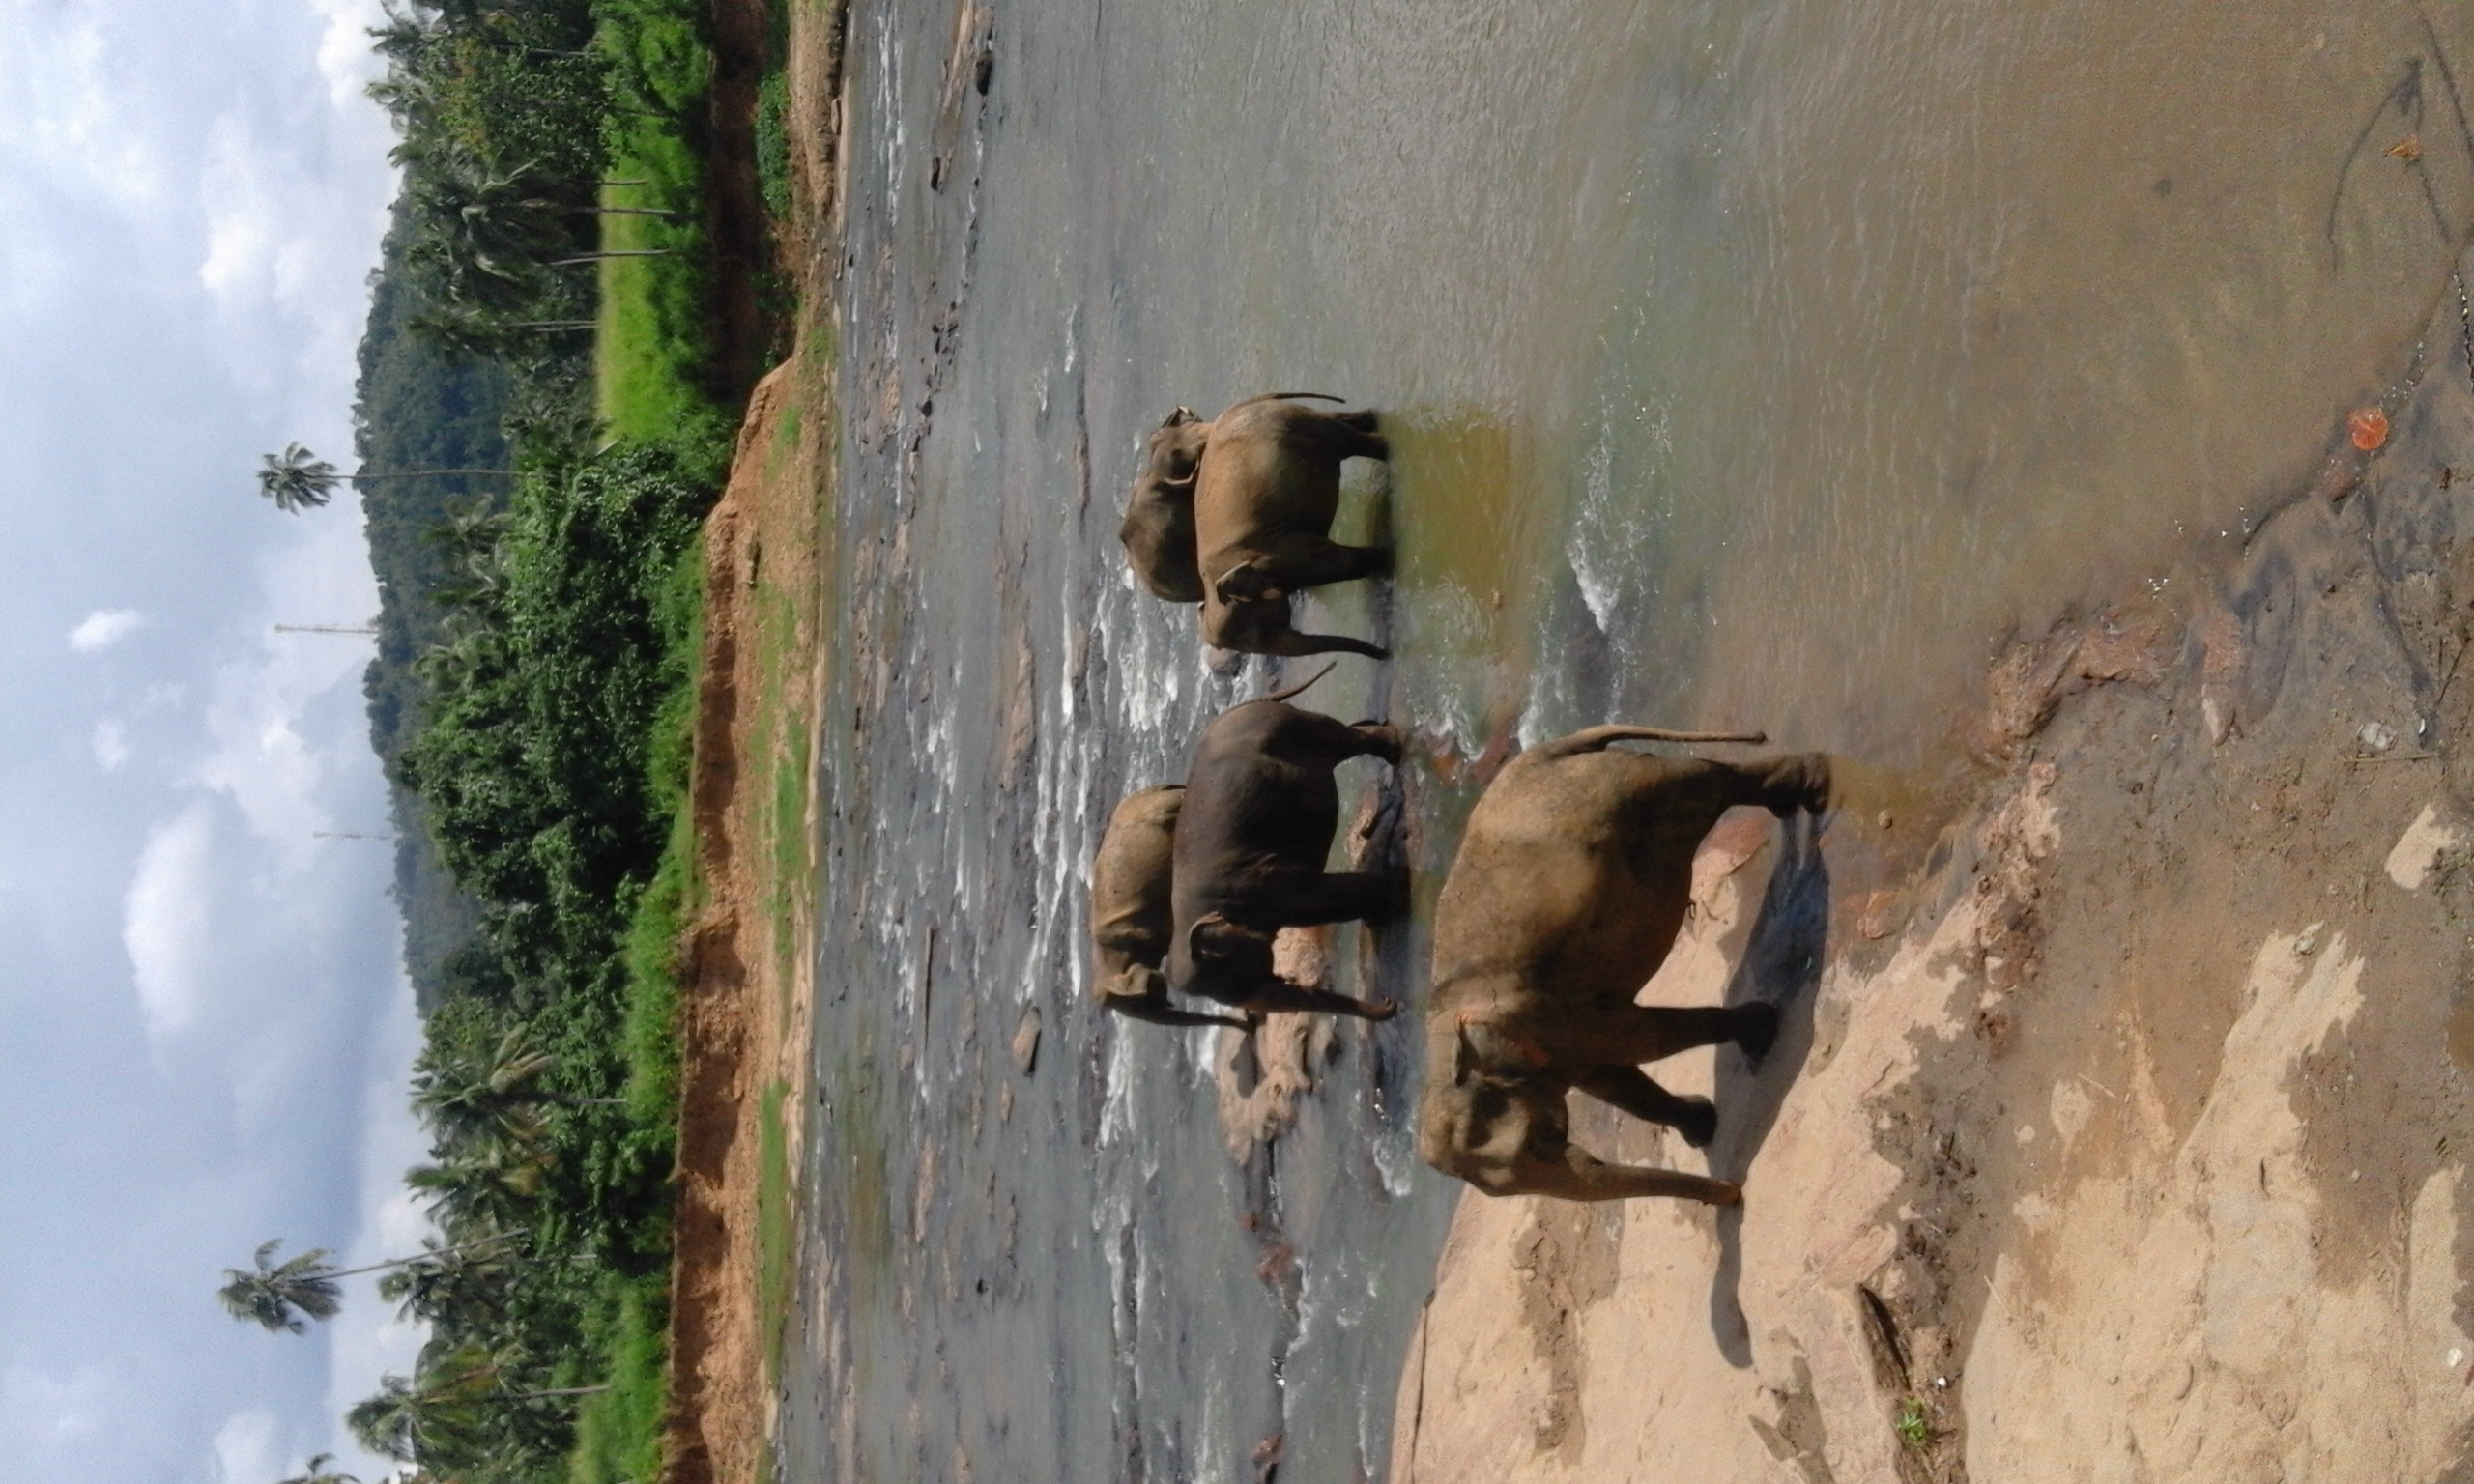 Befriend elephants in Pinnawala